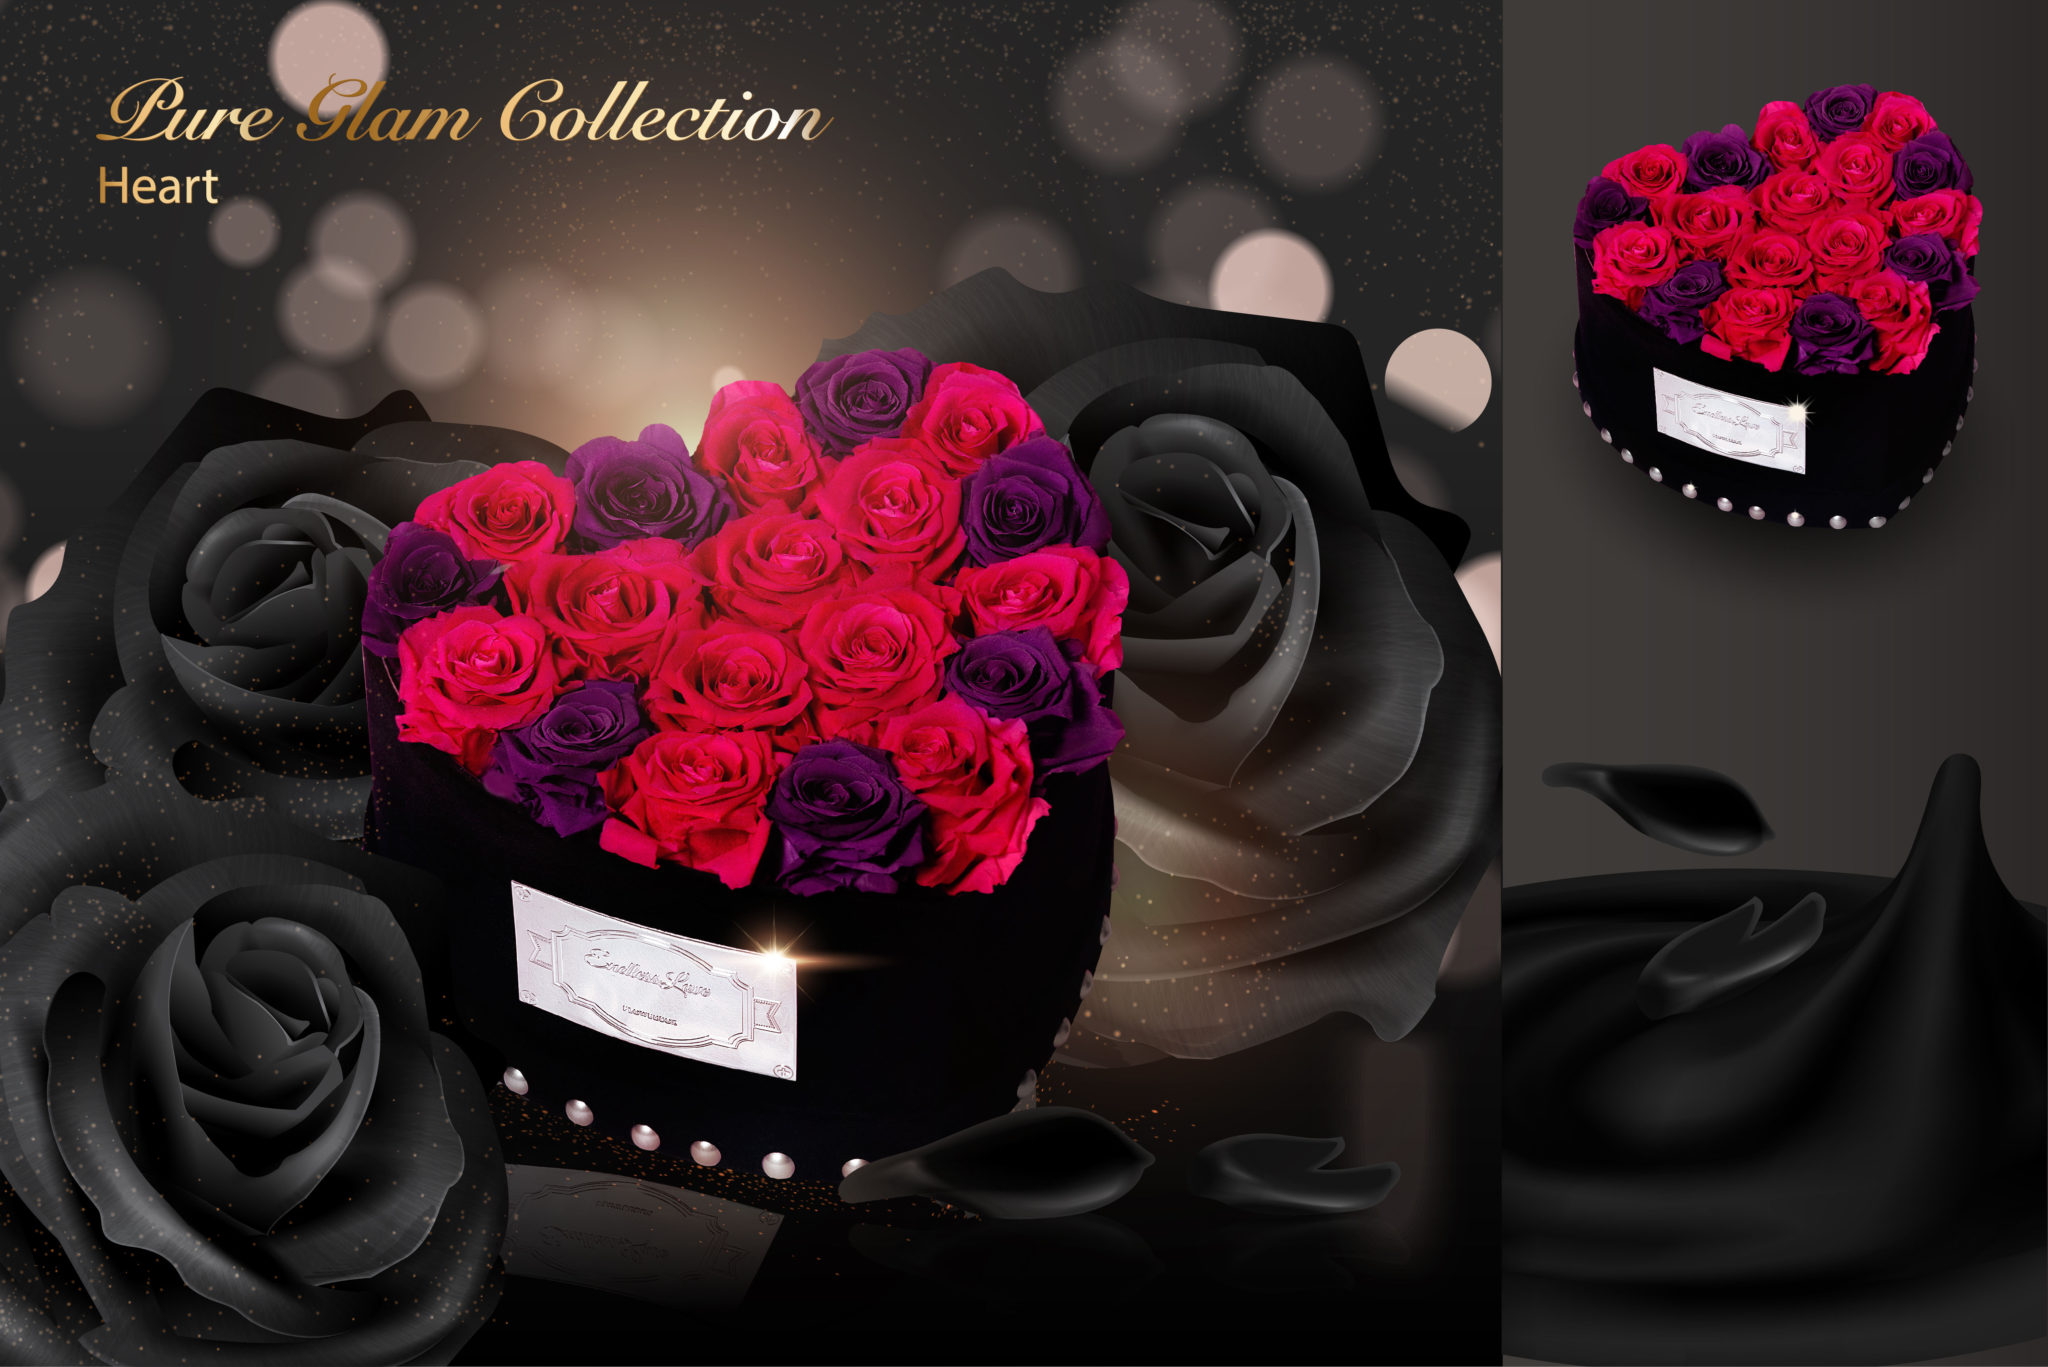 Pure Glam Collection Heart